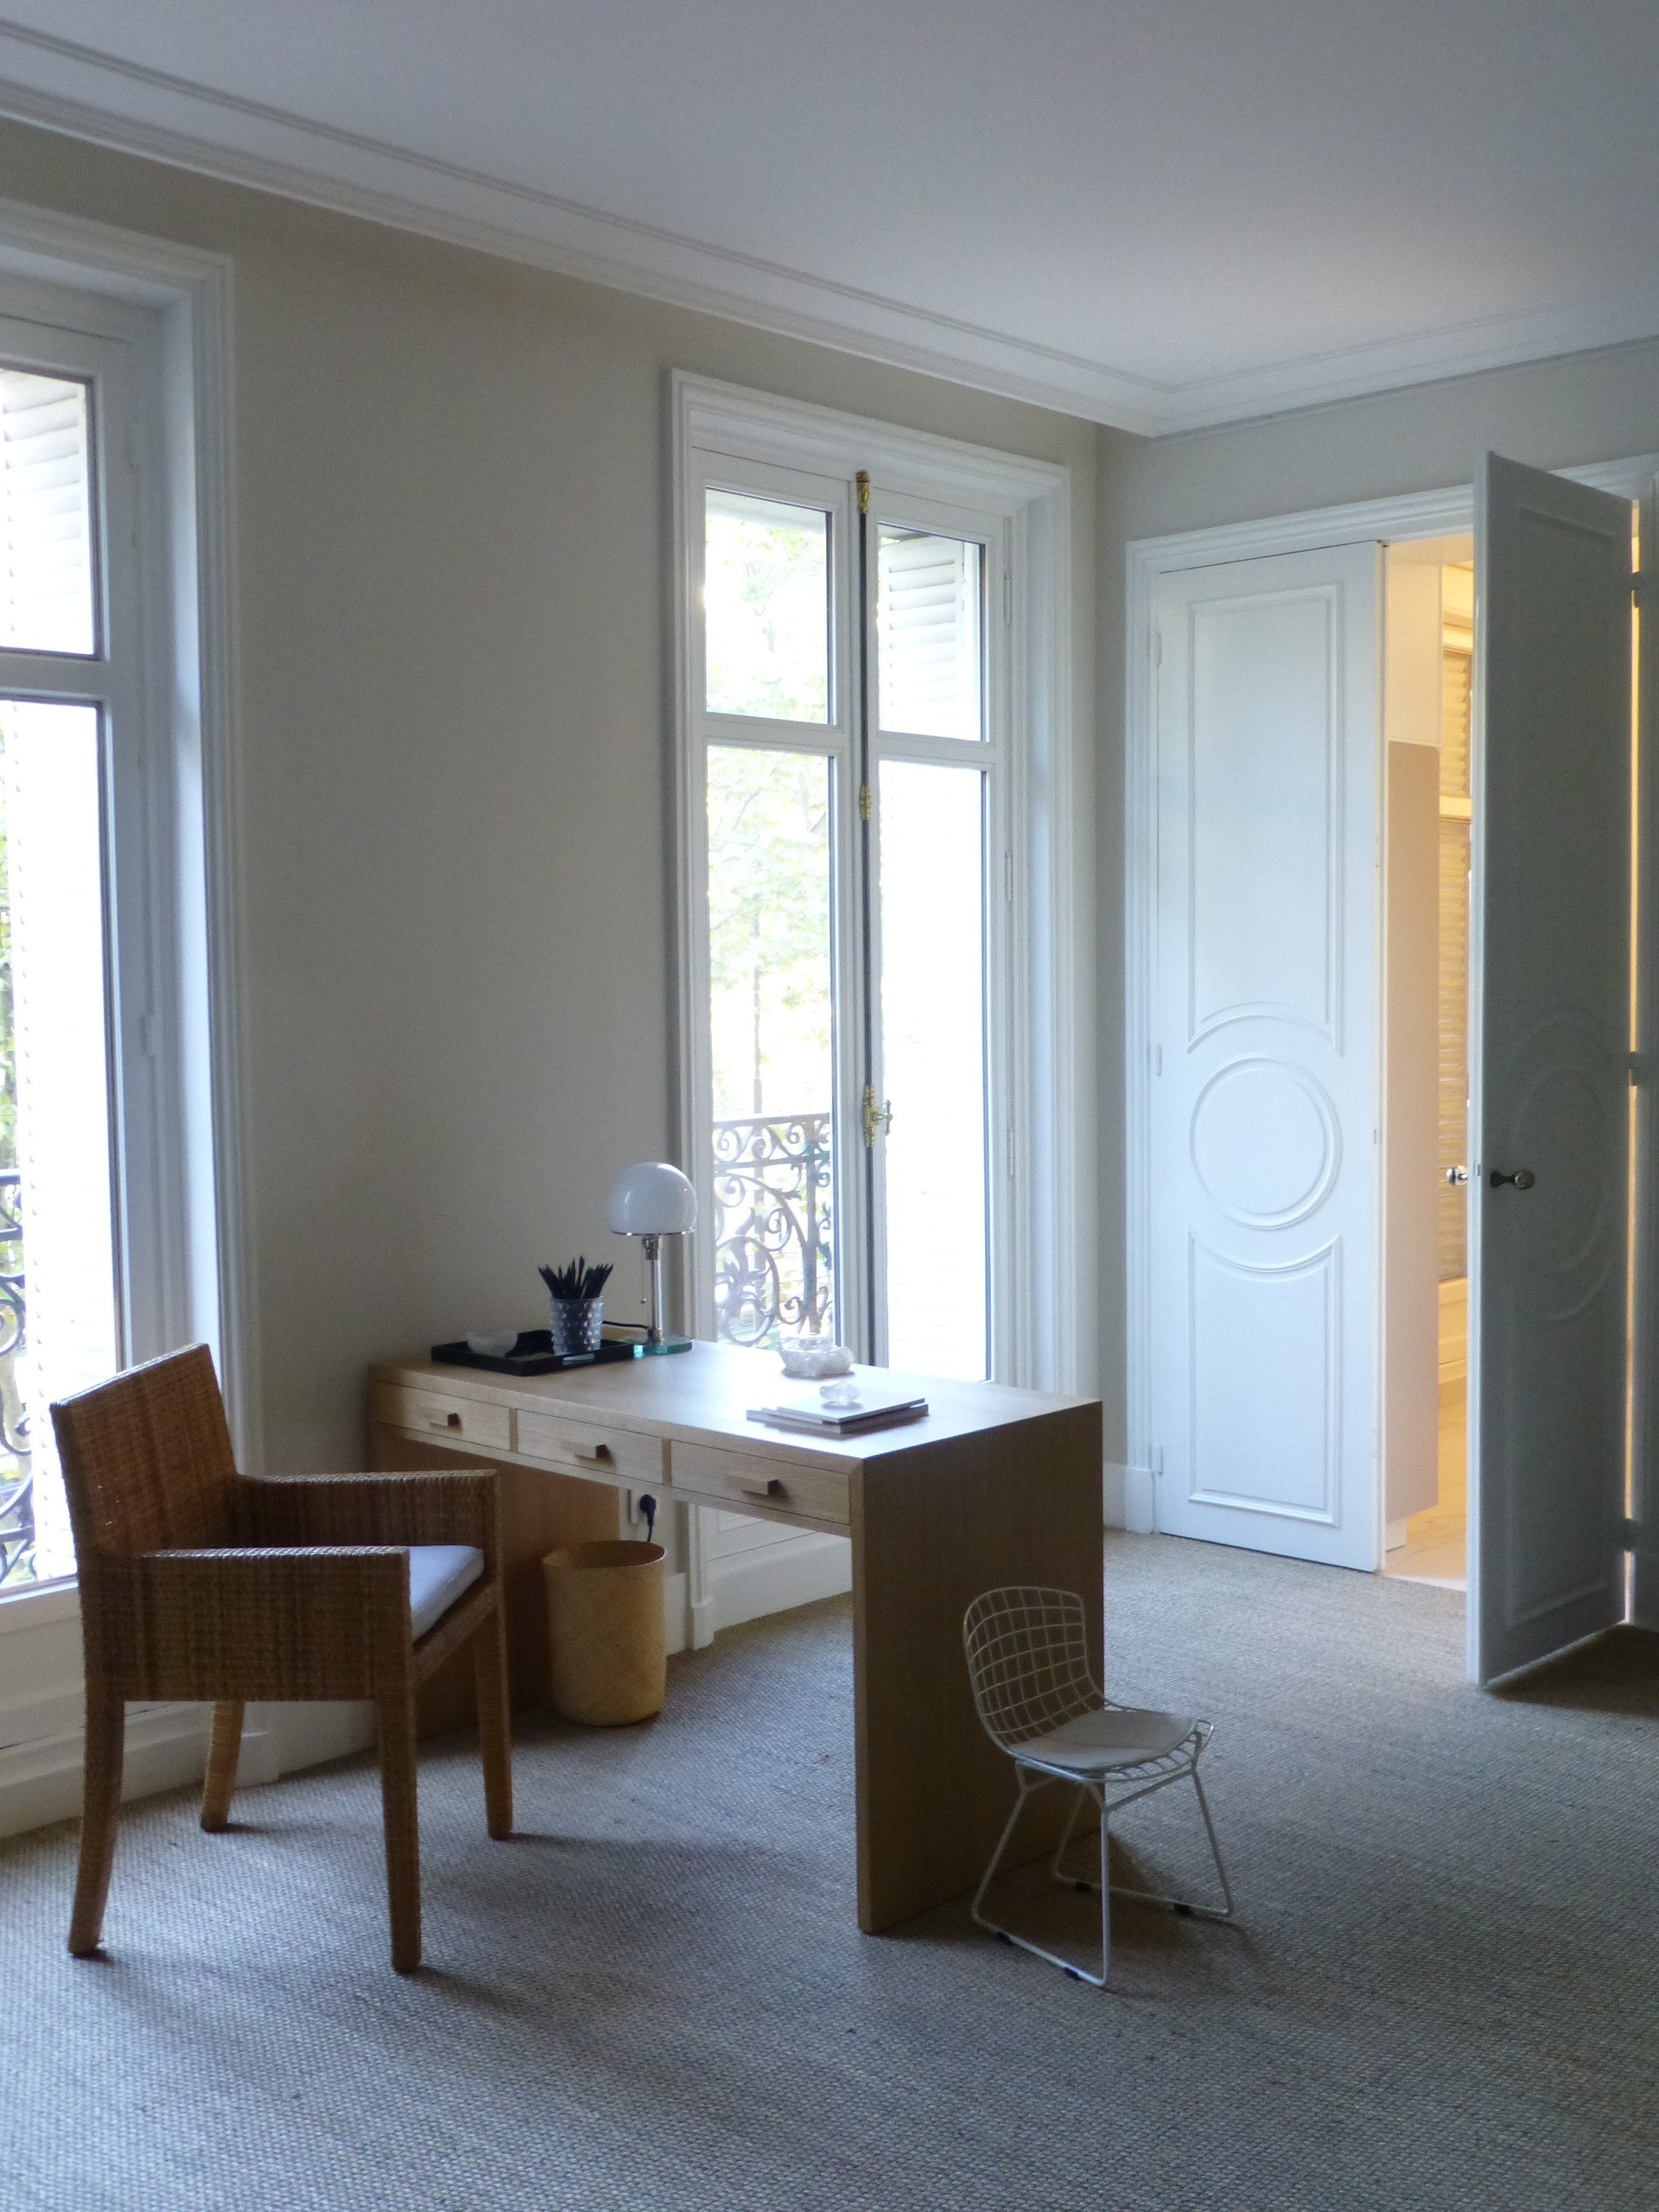 Renovation Haussmannien Rénovation D Un Appartement Haussmannien à Paris 7ème Atelier